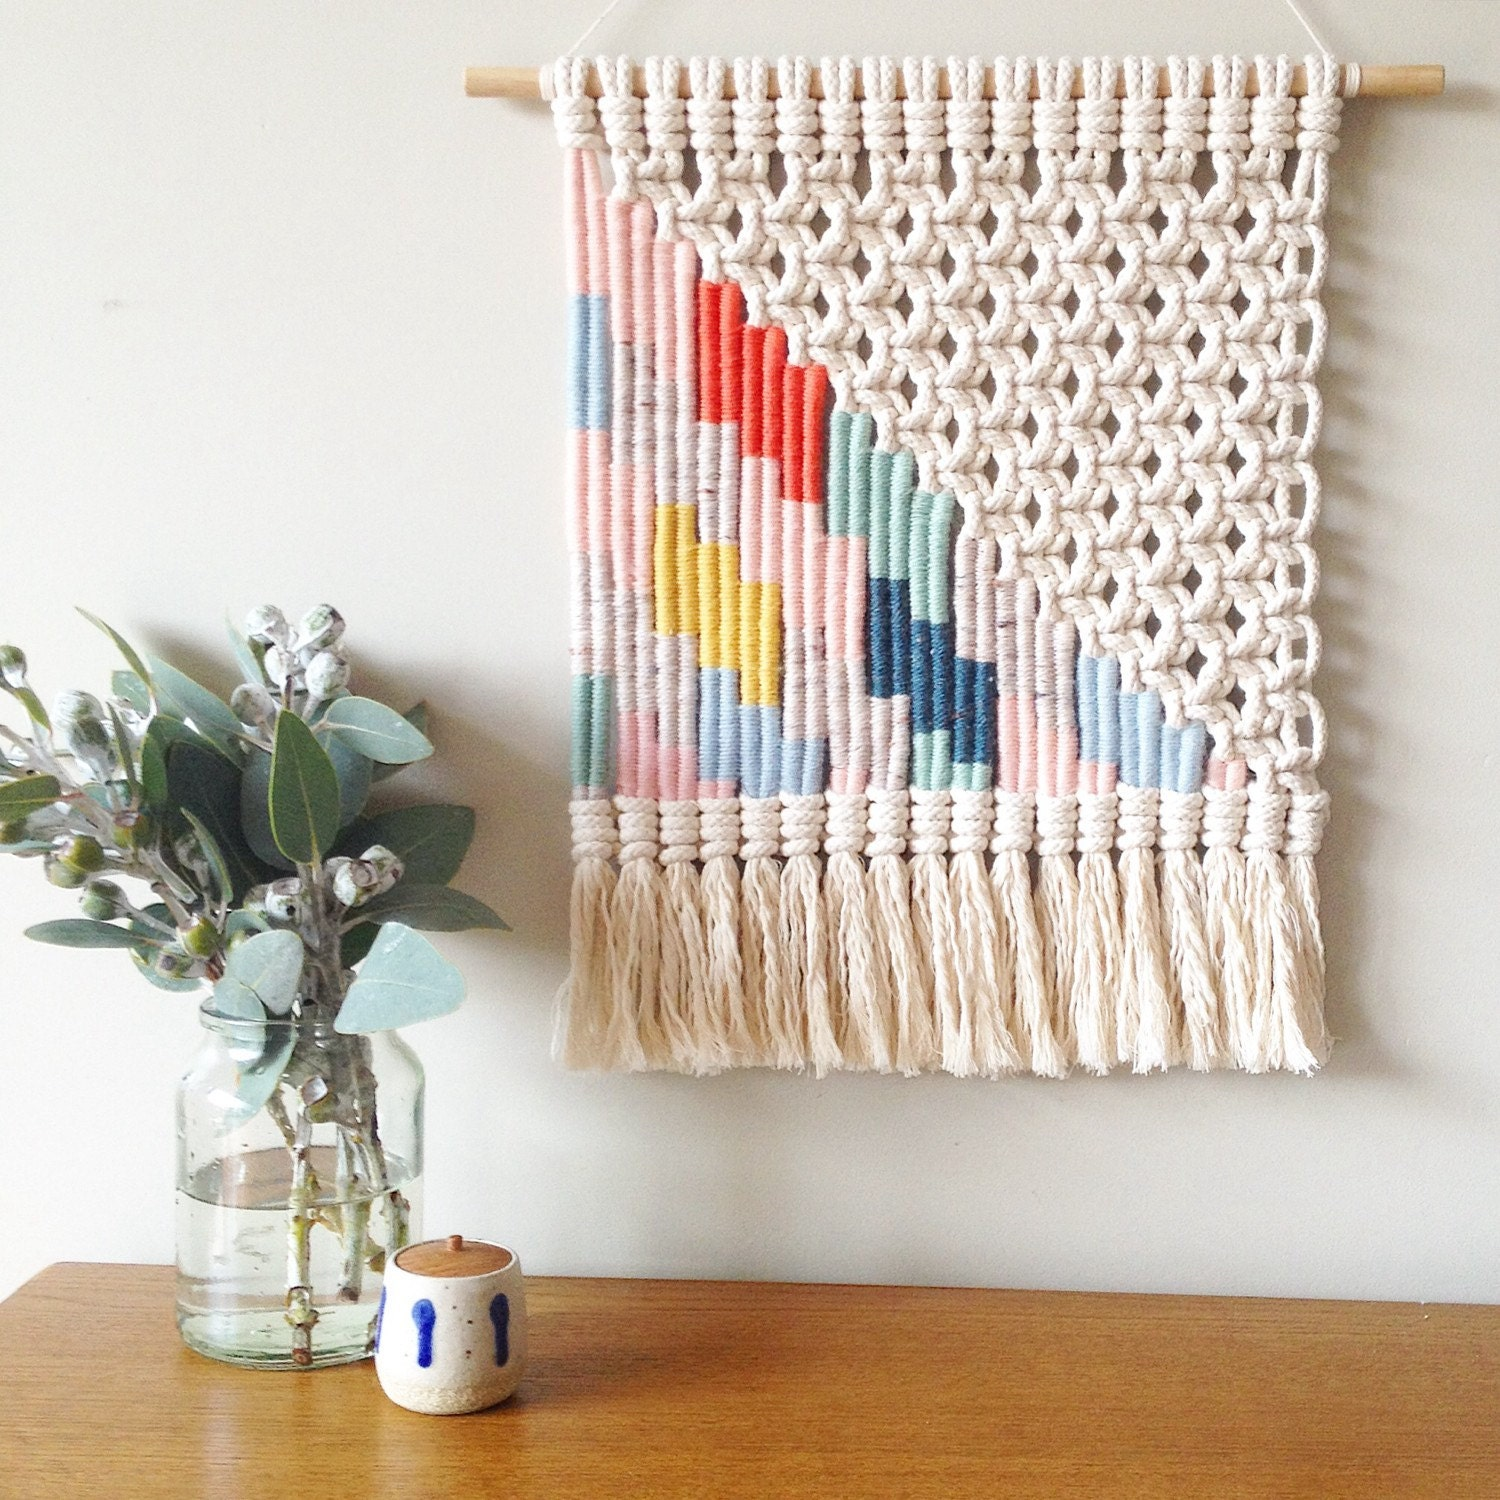 Woven Macrame Wall Hanging Multi Coloured Lightning